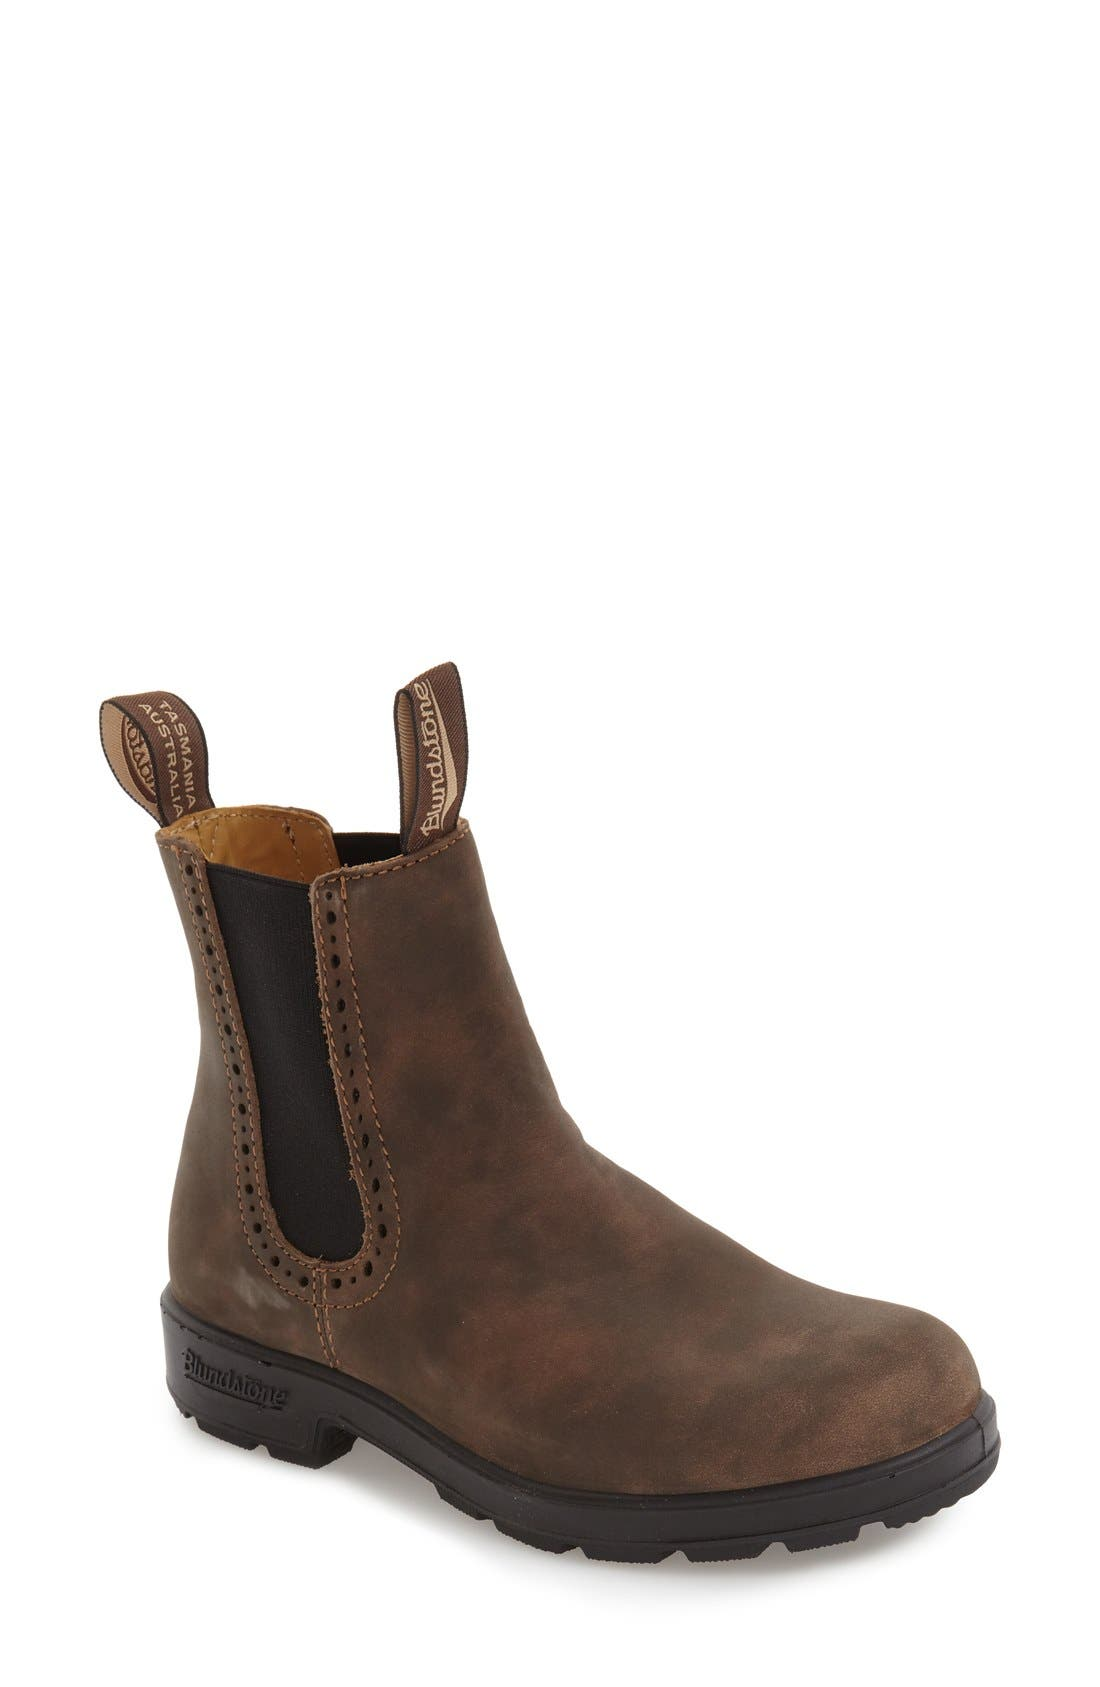 Footwear 'Original Series' Water Resistant Chelsea Boot,                             Main thumbnail 1, color,                             Rustic Brown Leather